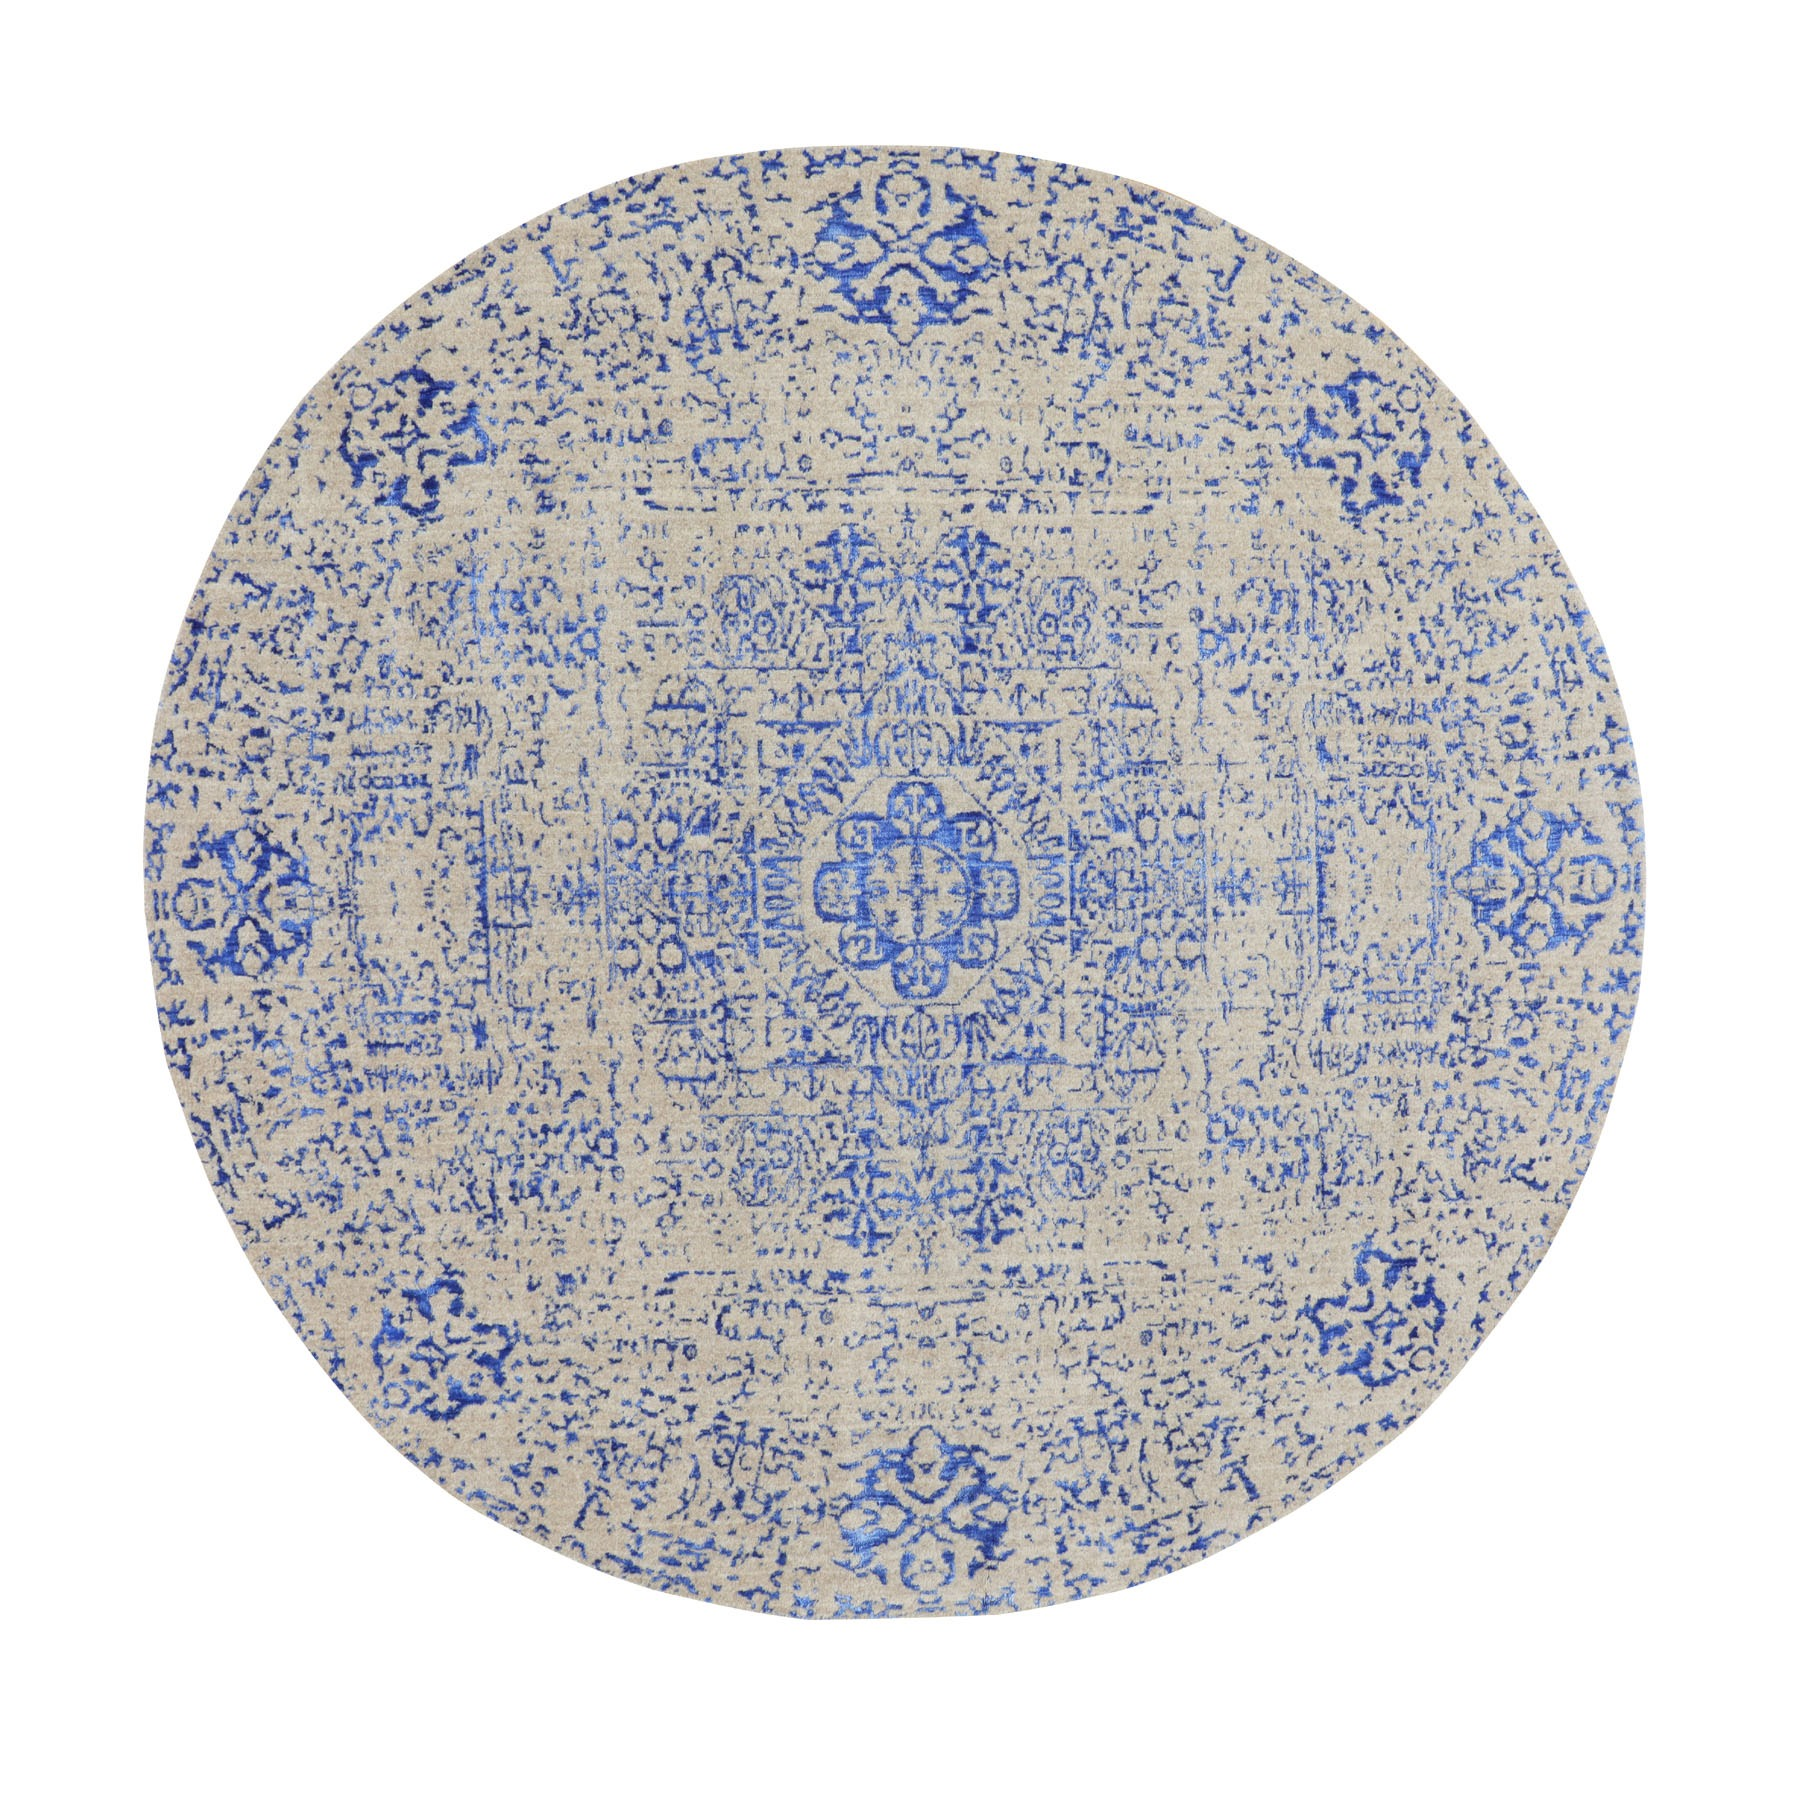 Intricate Collection Hand Loomed Blue Rug No: 01116236